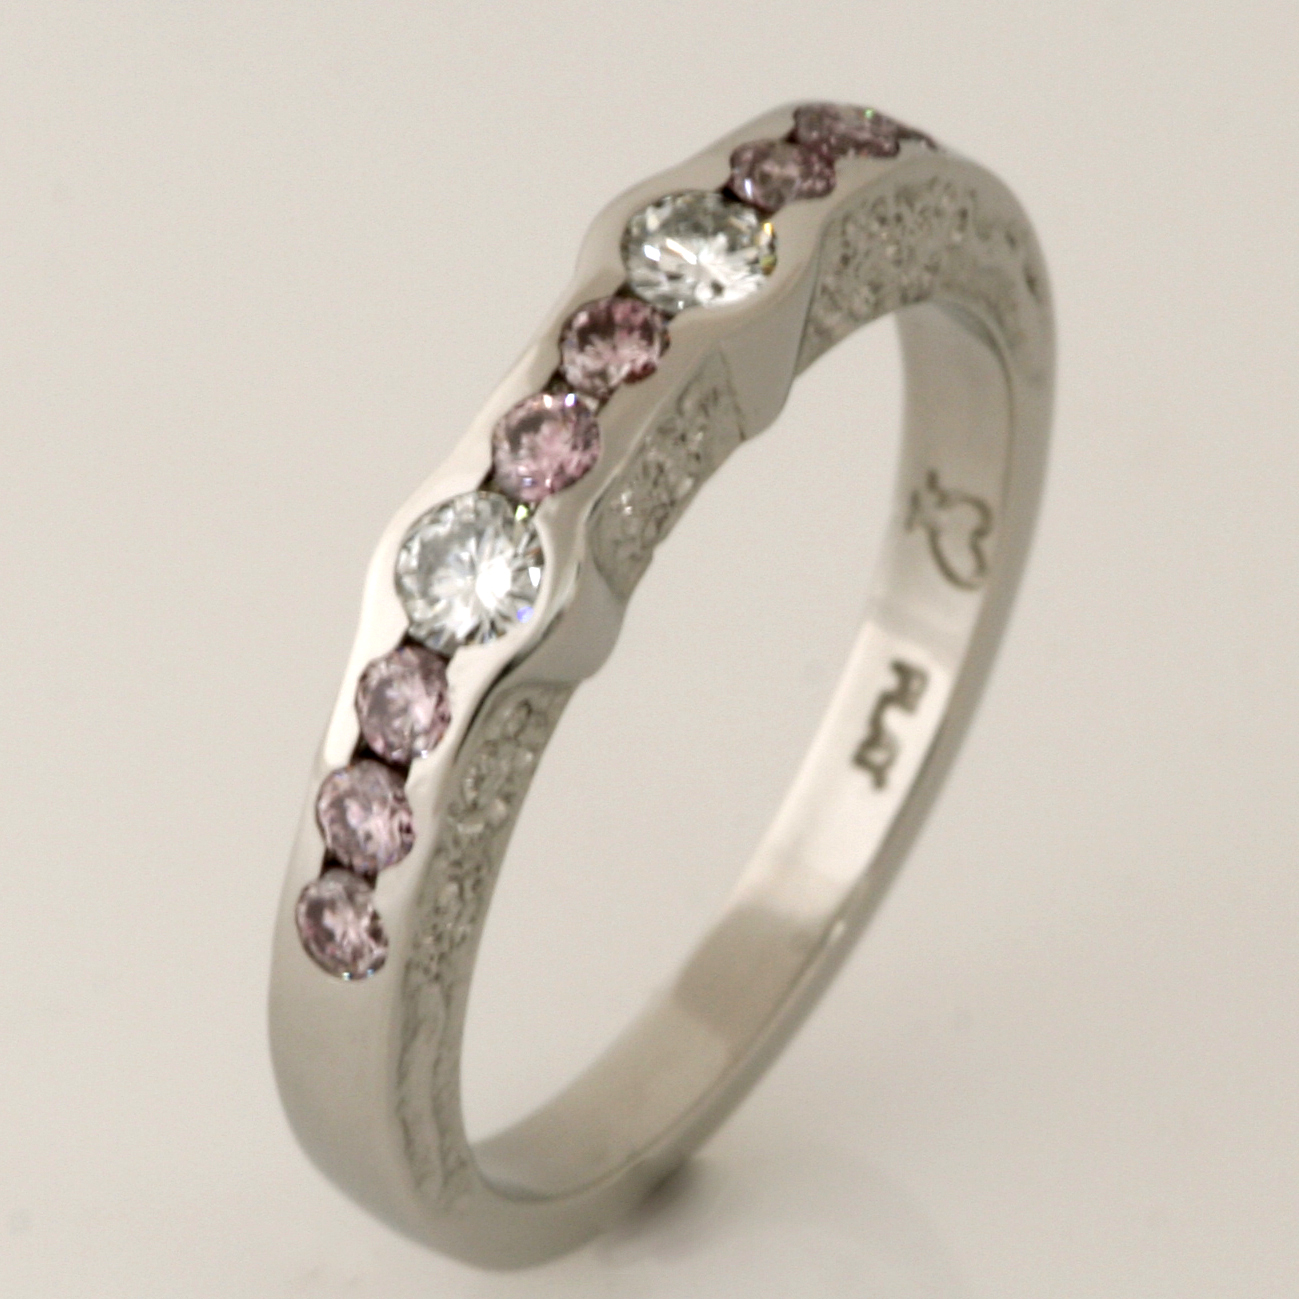 Handmade ladies white and pink diamond platinum ring